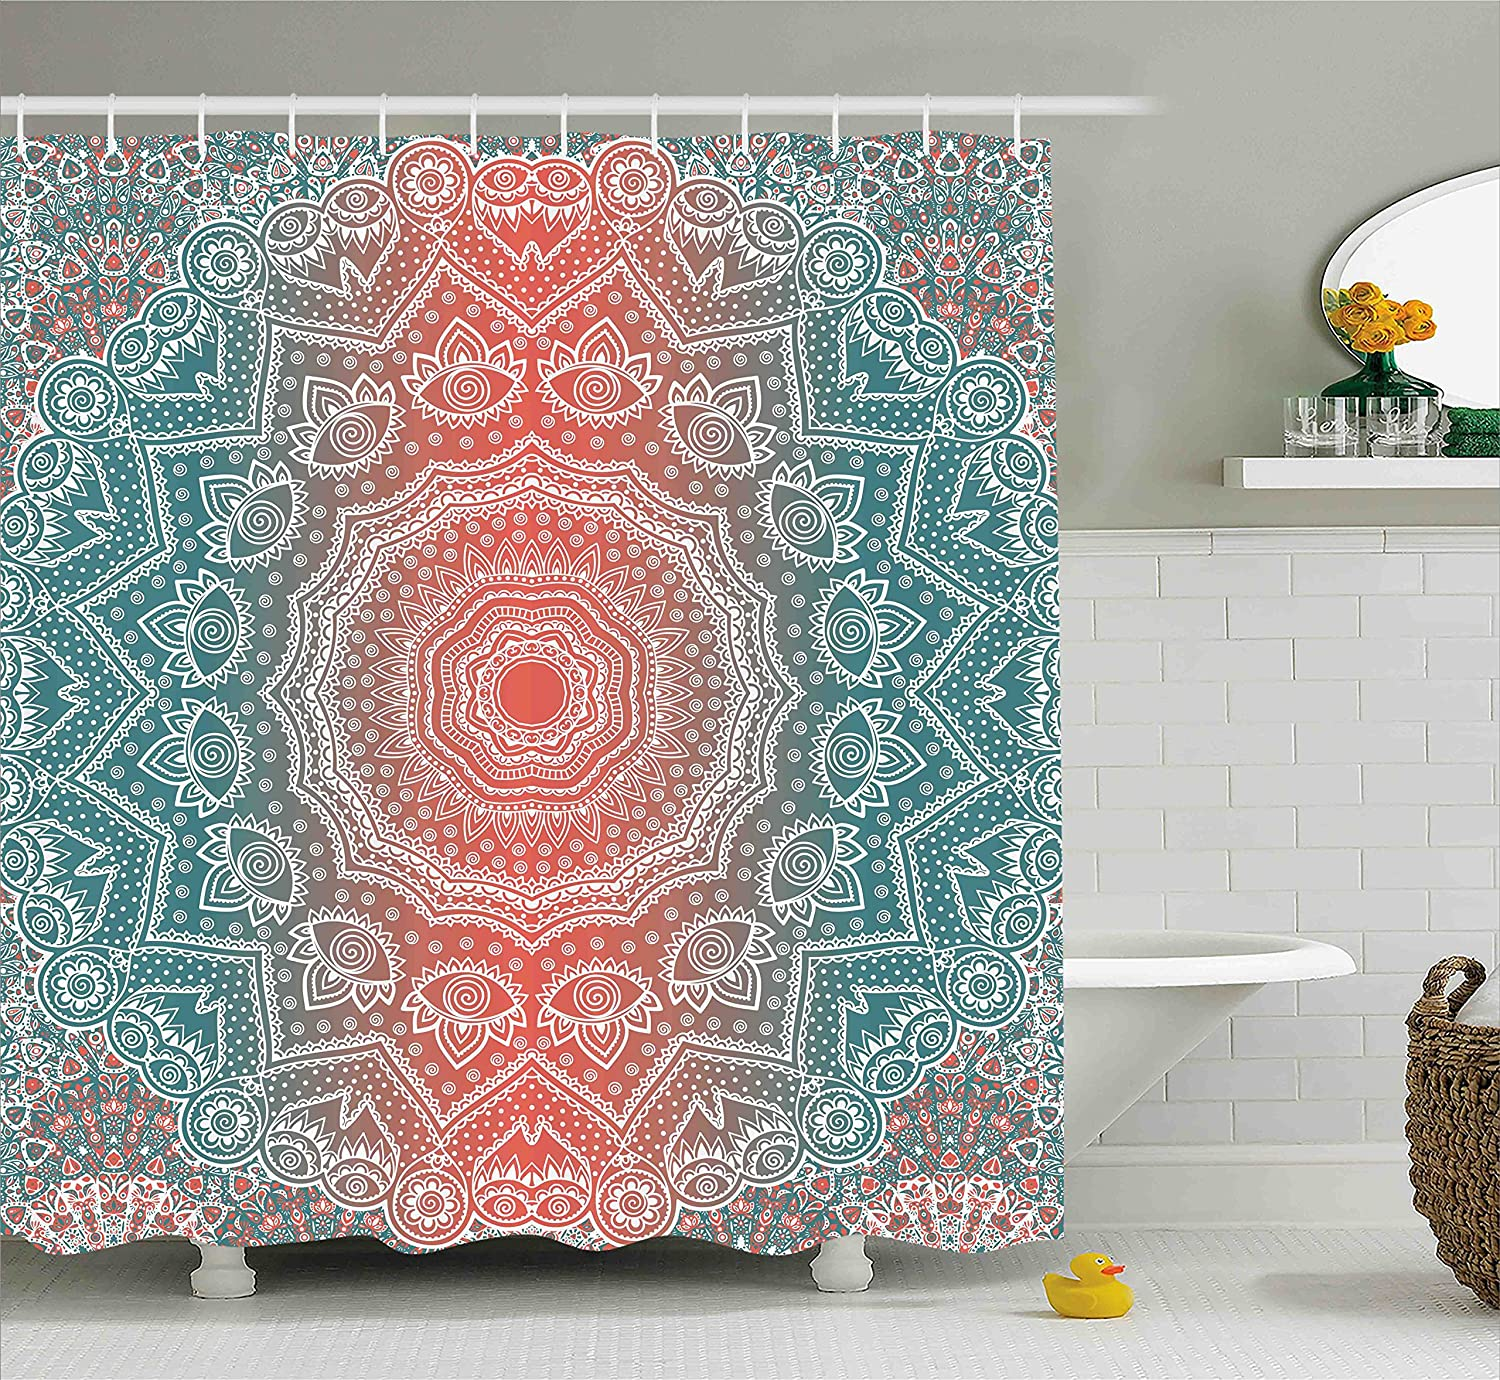 Amazon Ambesonne Coral And Teal Shower Curtain Modern Tribal Mandala Tibetan Healing Motif With Floral Geometric Ombre Art Fabric Bathroom Decor Set